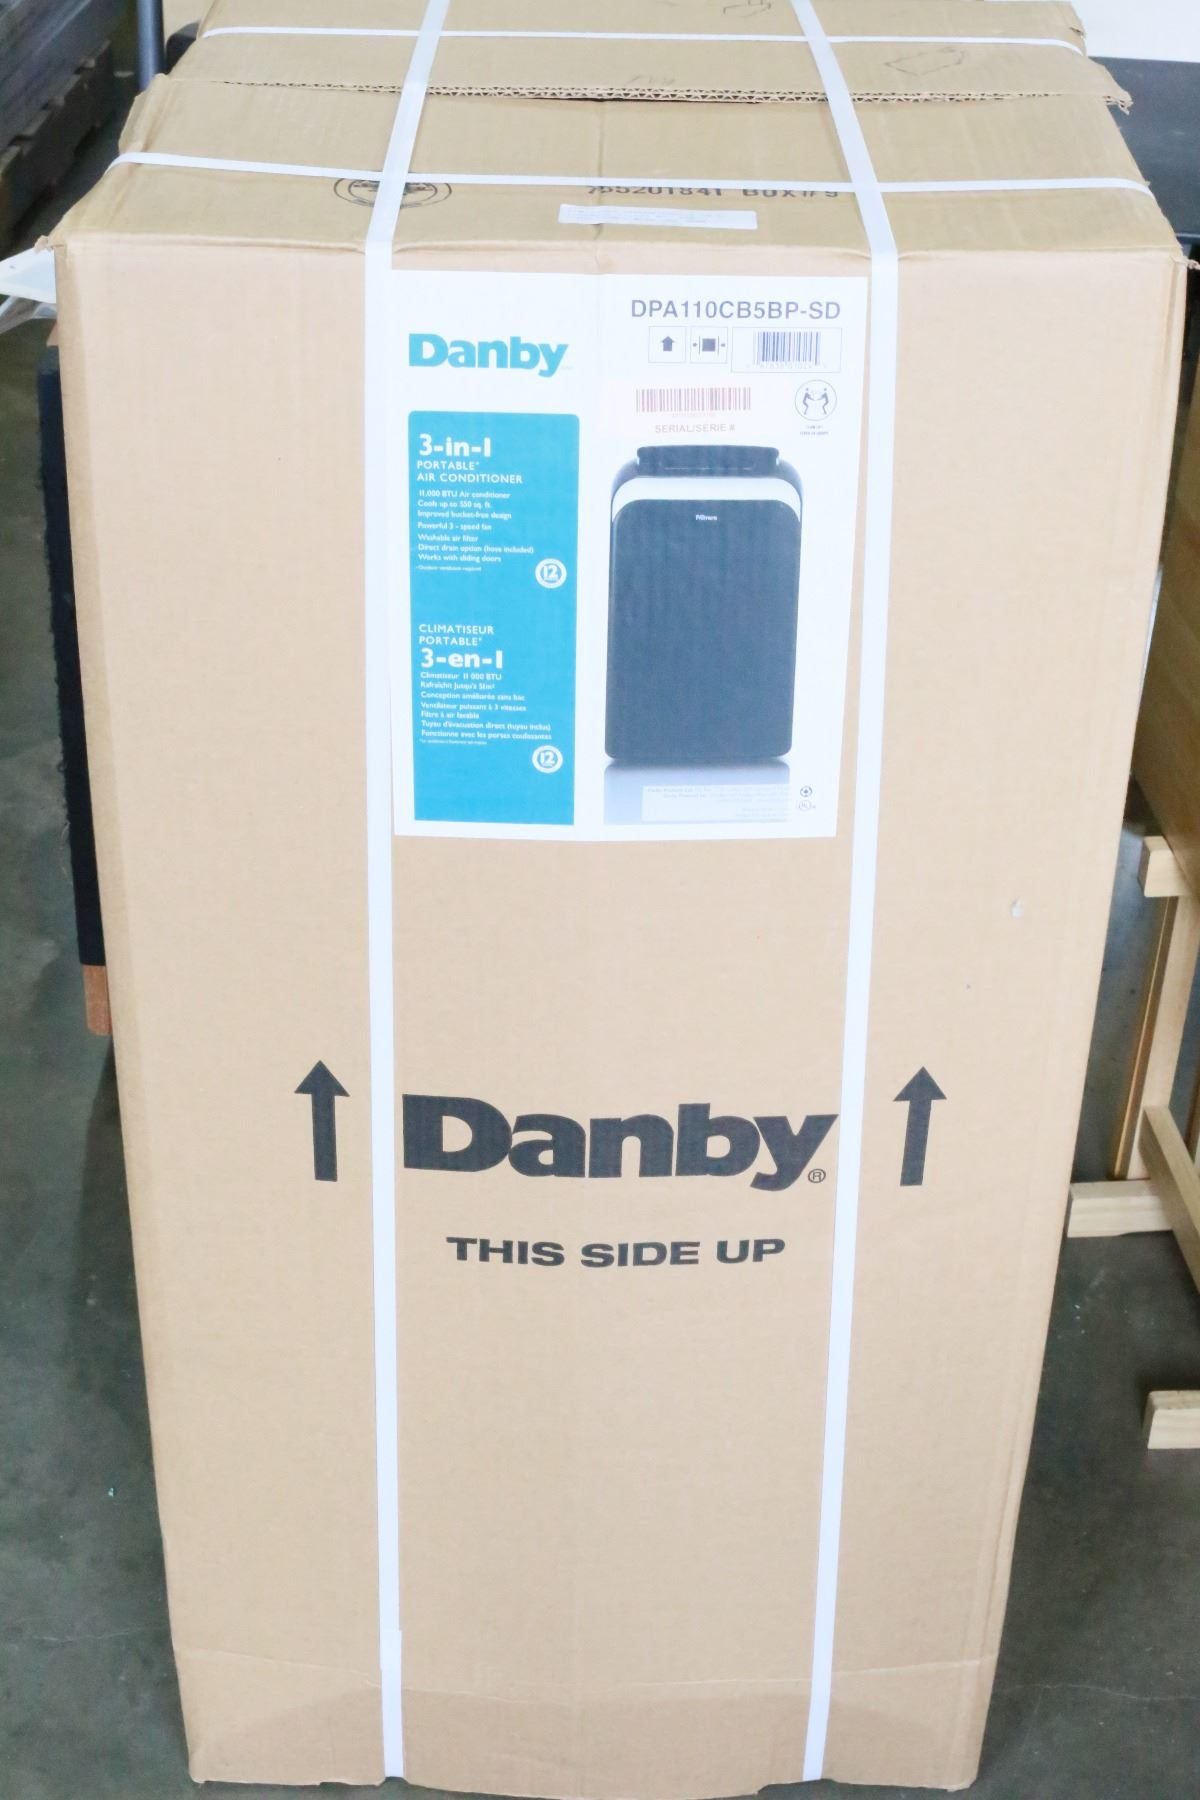 NEW DANBY REFURBISHED 3 IN 1 PORTABLE 11,000 BTU AIR CONDITIONER WITH ONE  YEAR WARRENTY